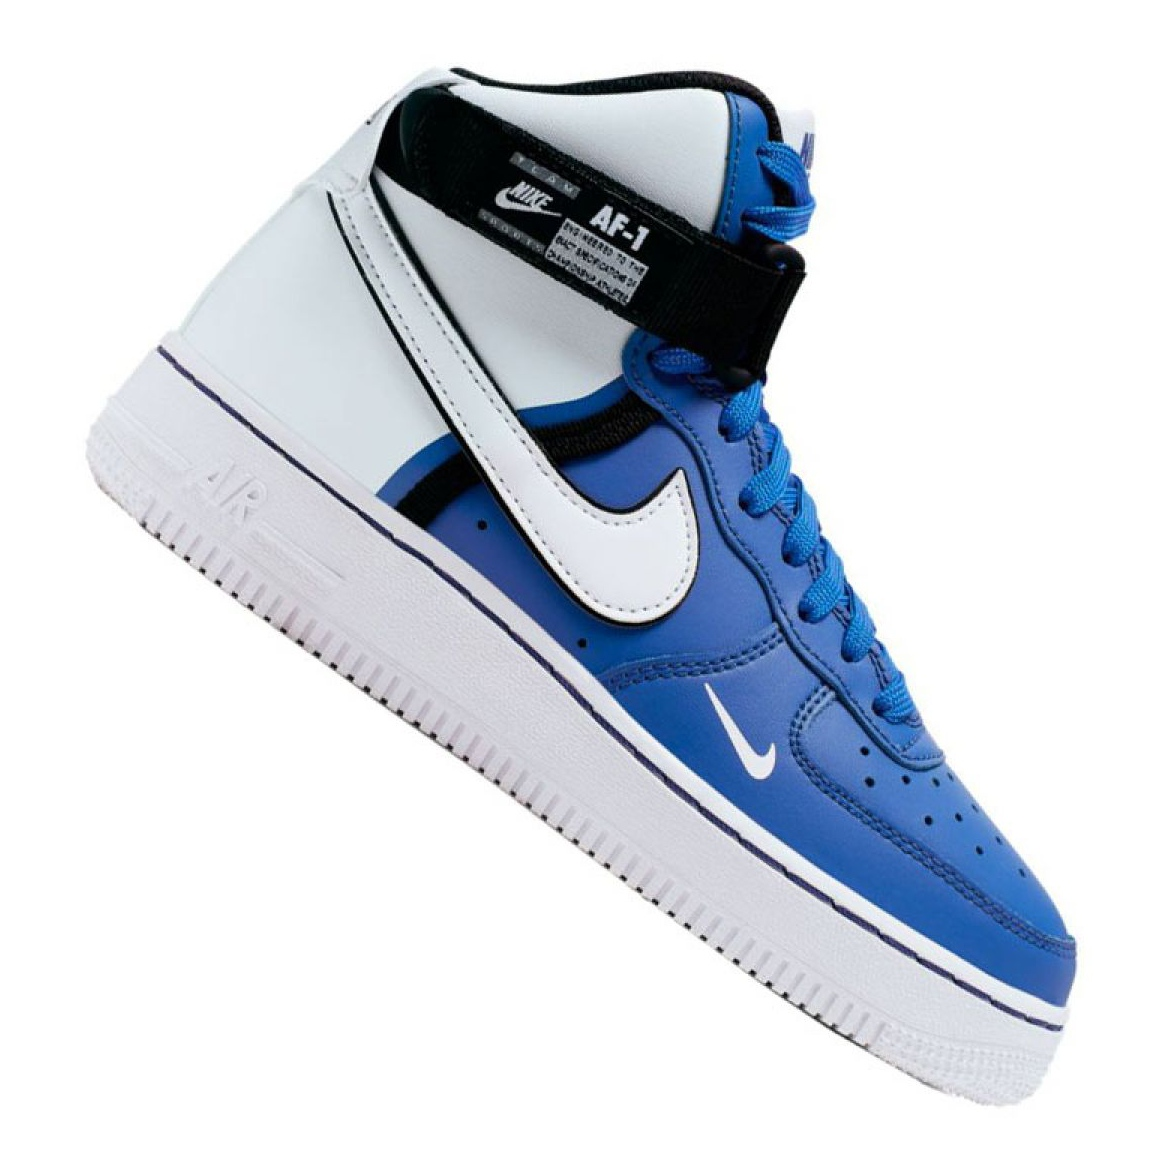 Details about Nike Air Force 1 High LV8 2 Jr CI2164 400 shoes white blue